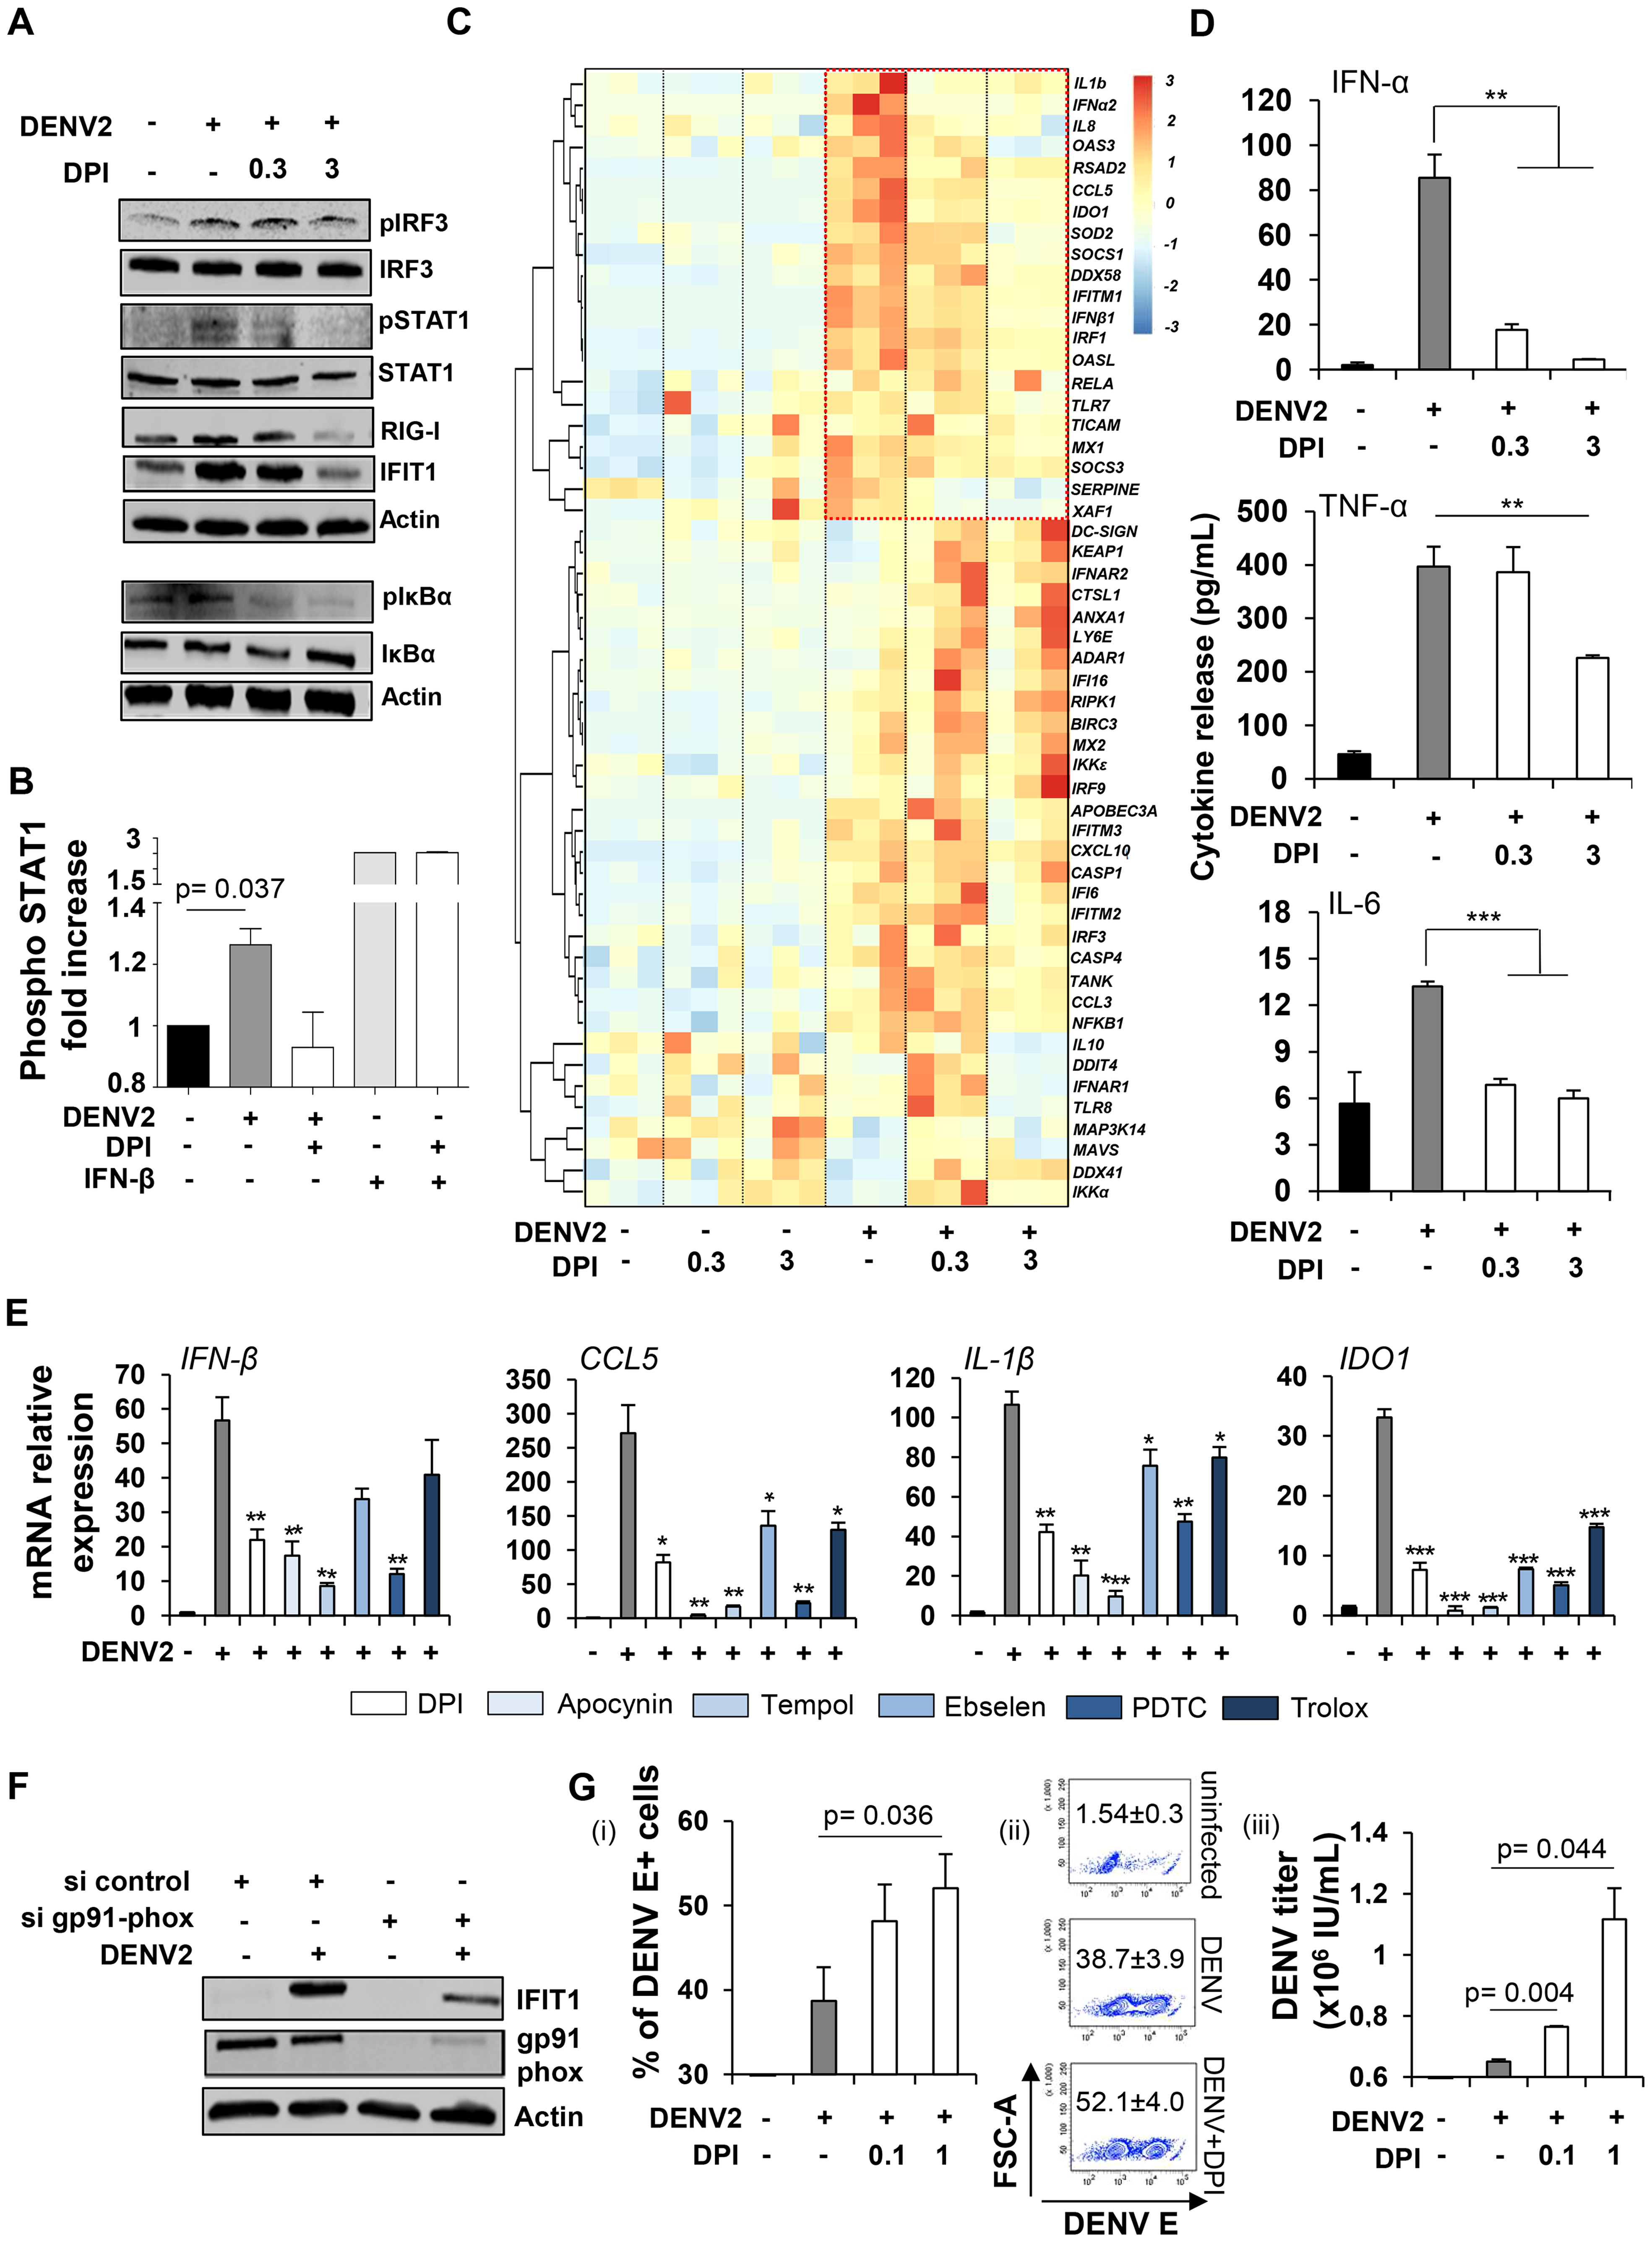 Cellular oxidative stress response is required to mediate DENV-induced innate immune responses.